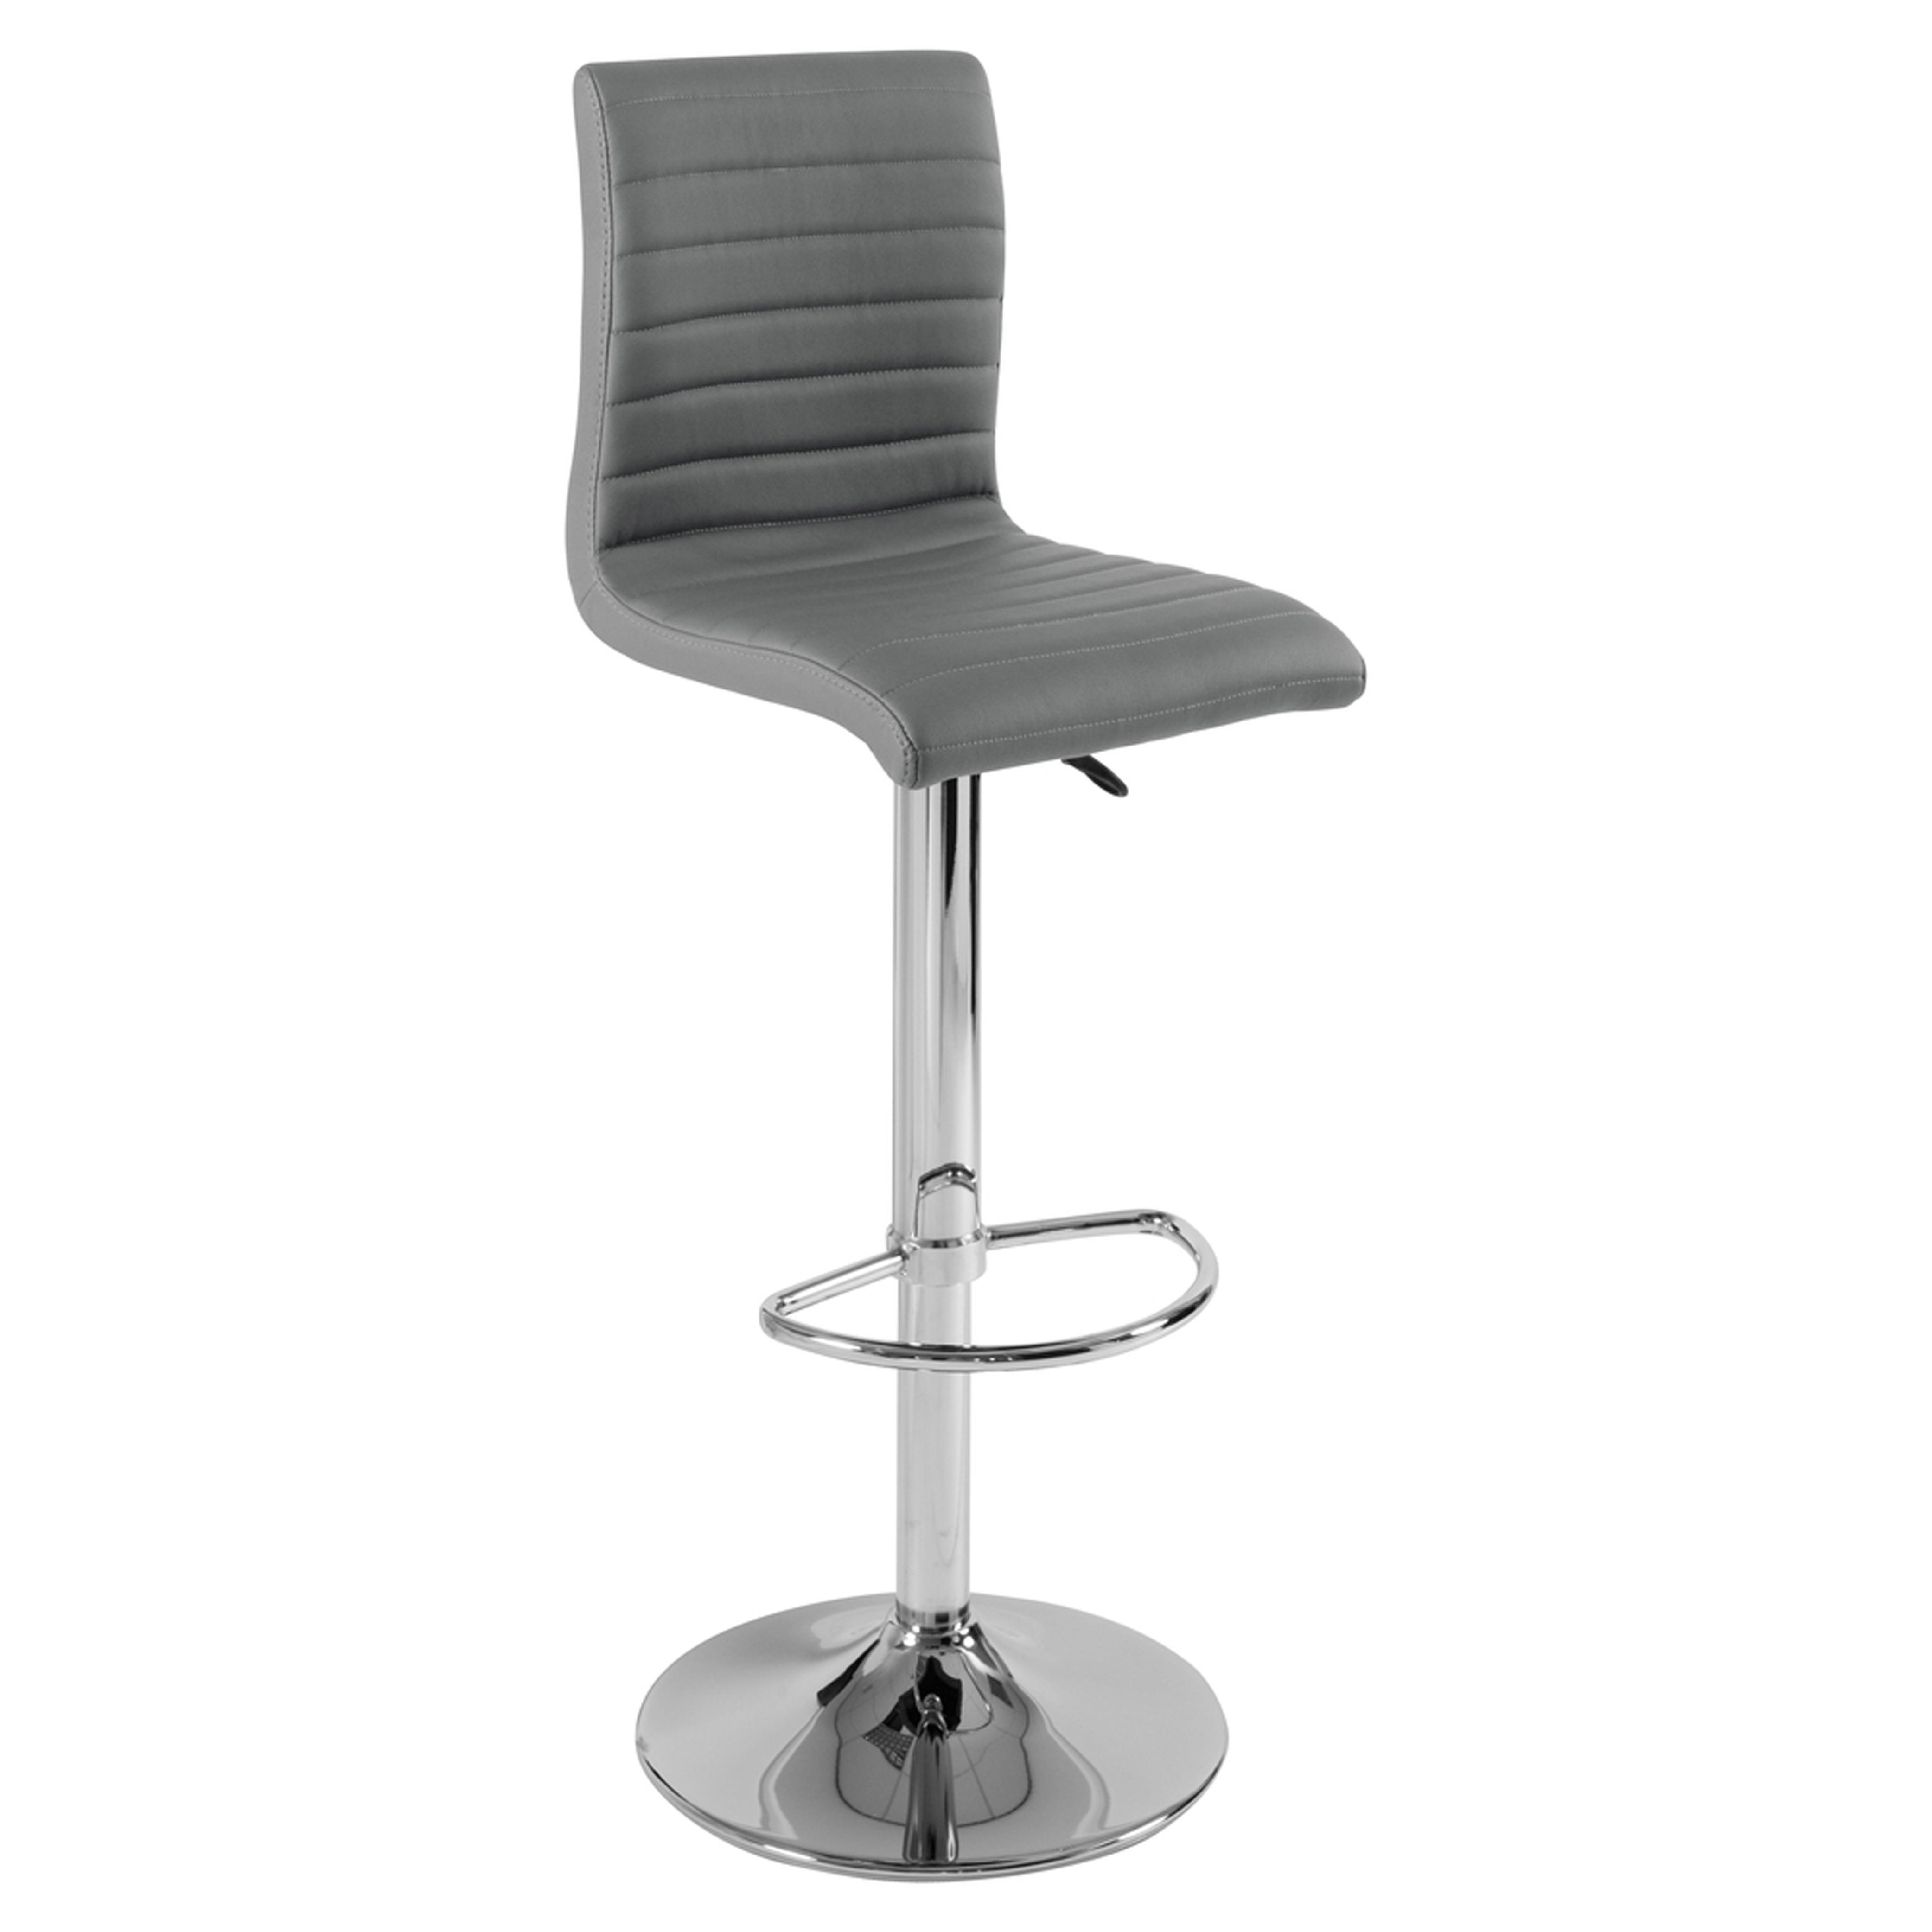 Versa bar stool grey